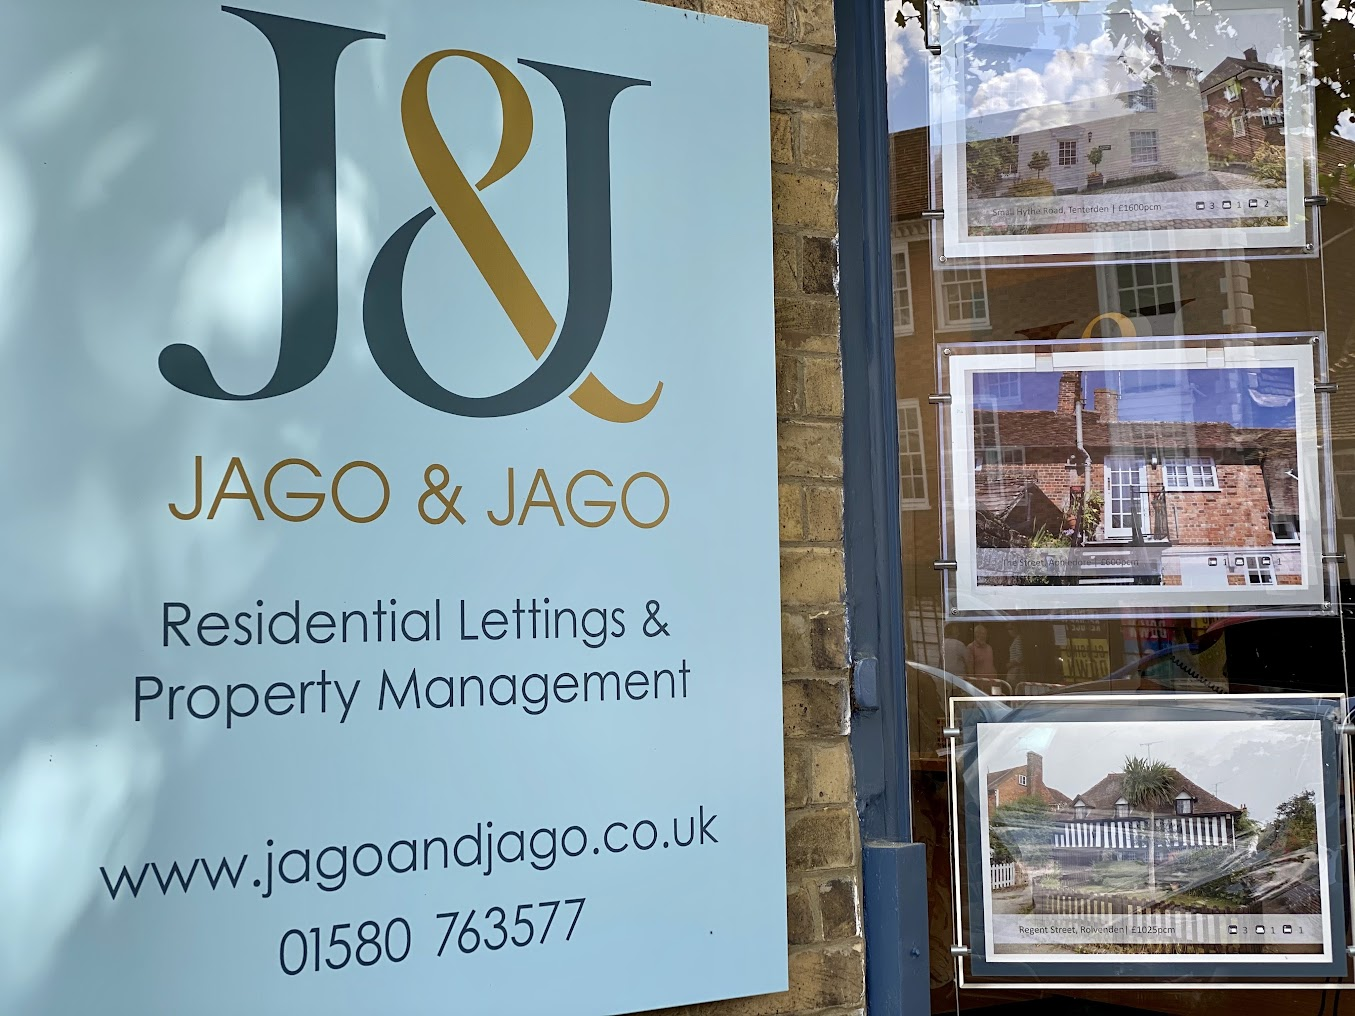 Jago and Jago Letting Agents Tenterden